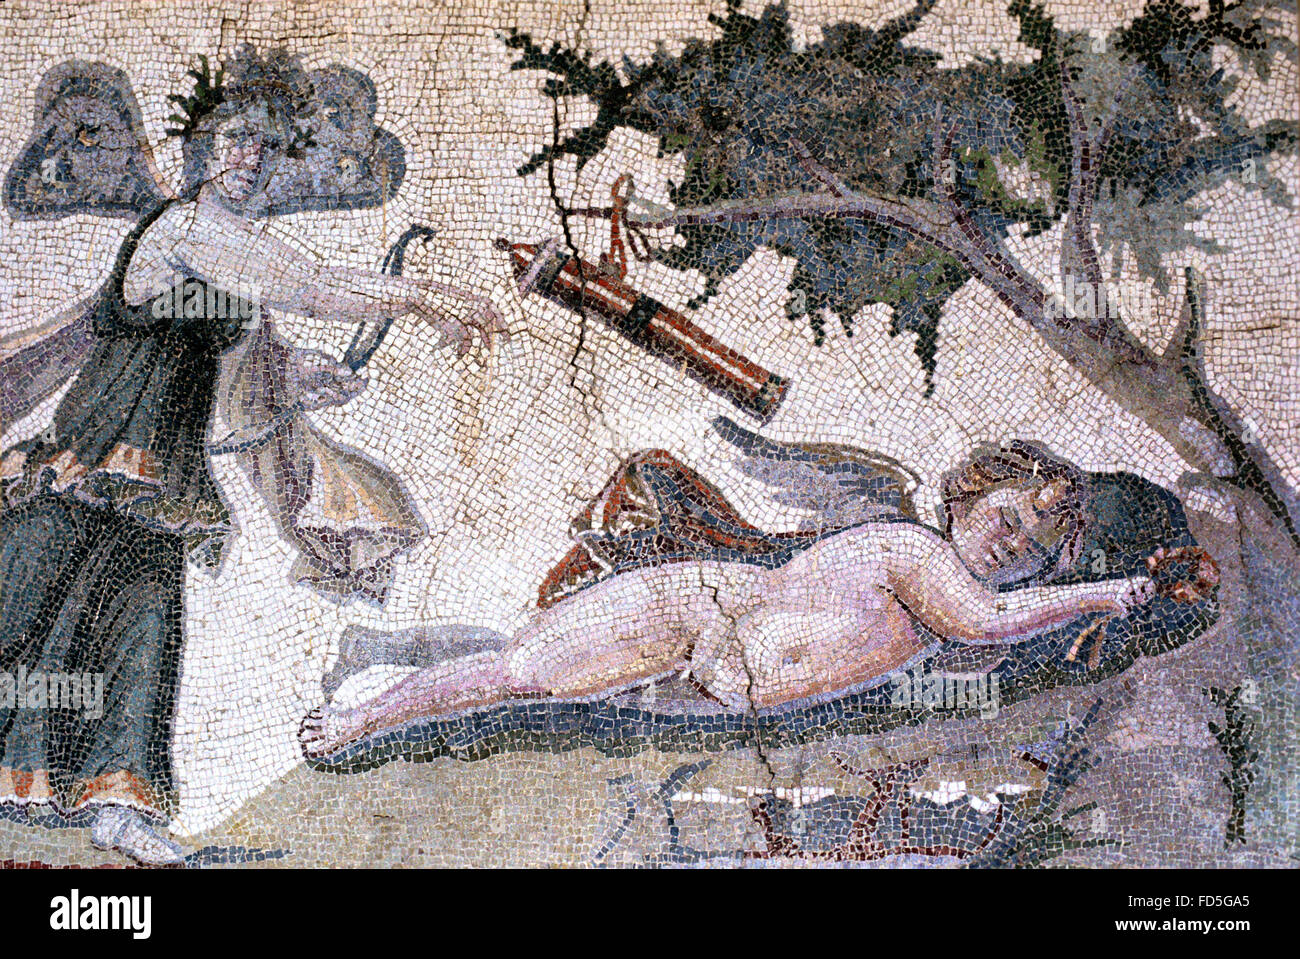 Eros, the Greek God of Love (or Roman Cupid) and Psyche a mortal Woman in Greek Mythology who became Eros' Wife. Stock Photo